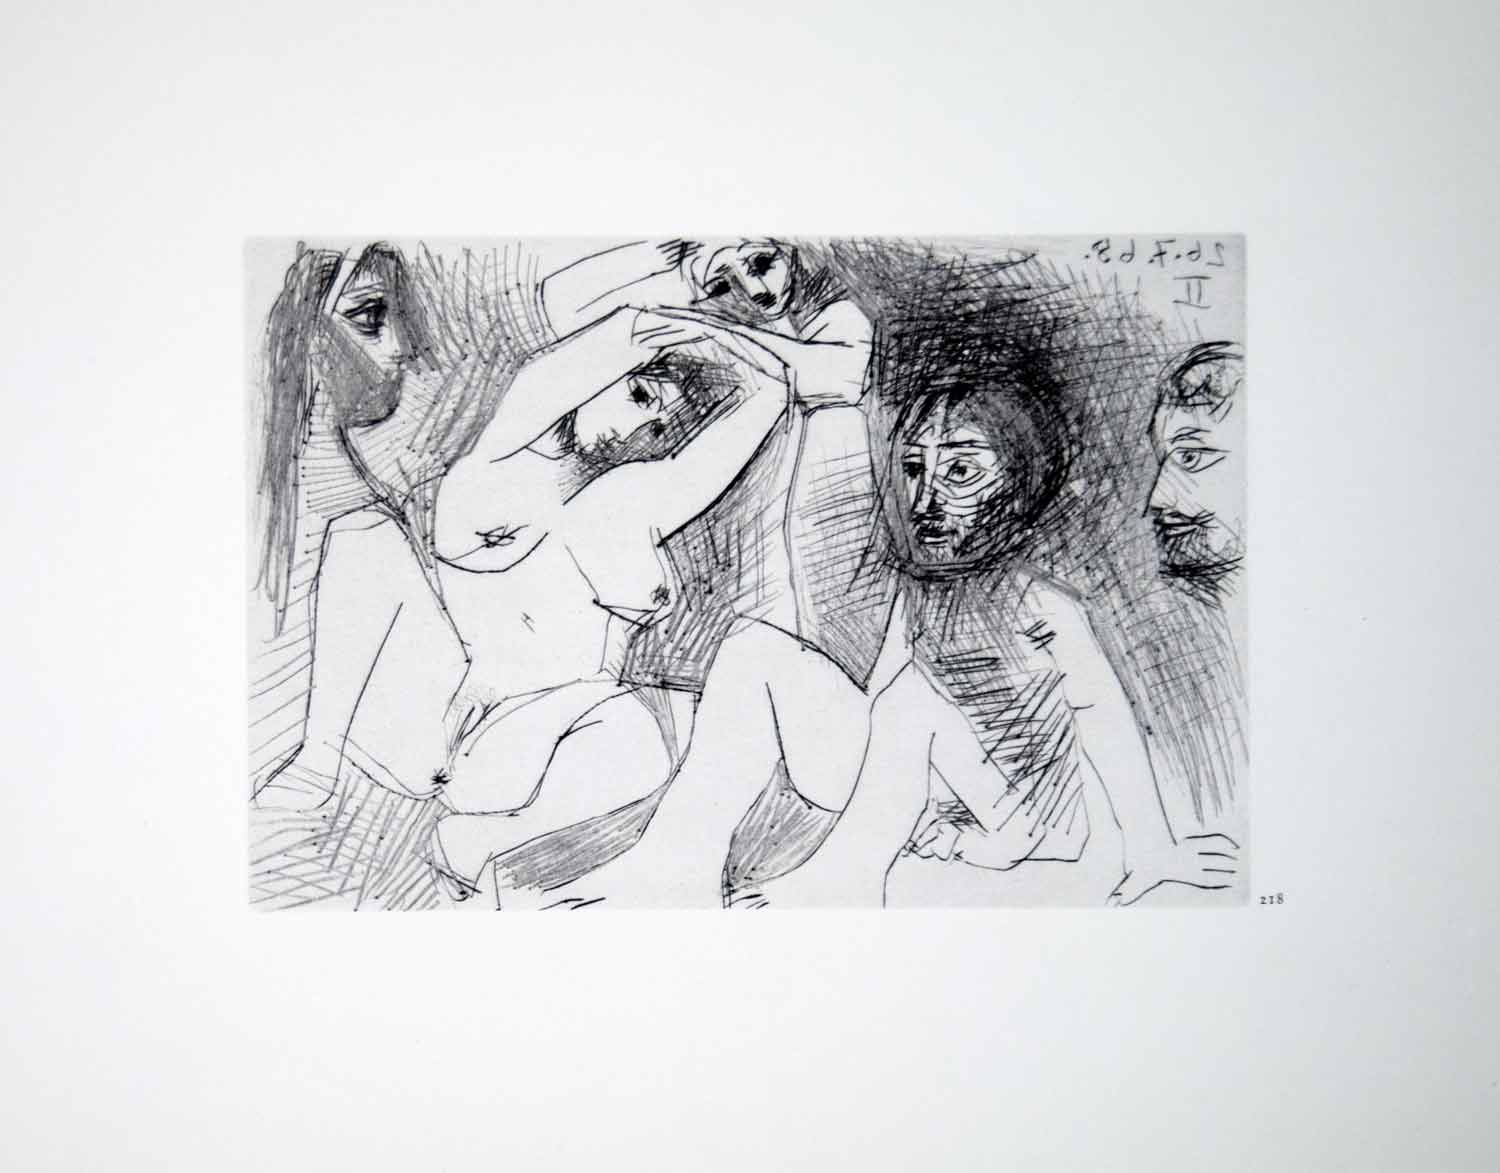 1970 Heliogravure Picasso Nudes Abstract Art Female Male Figure Dry Point P347B